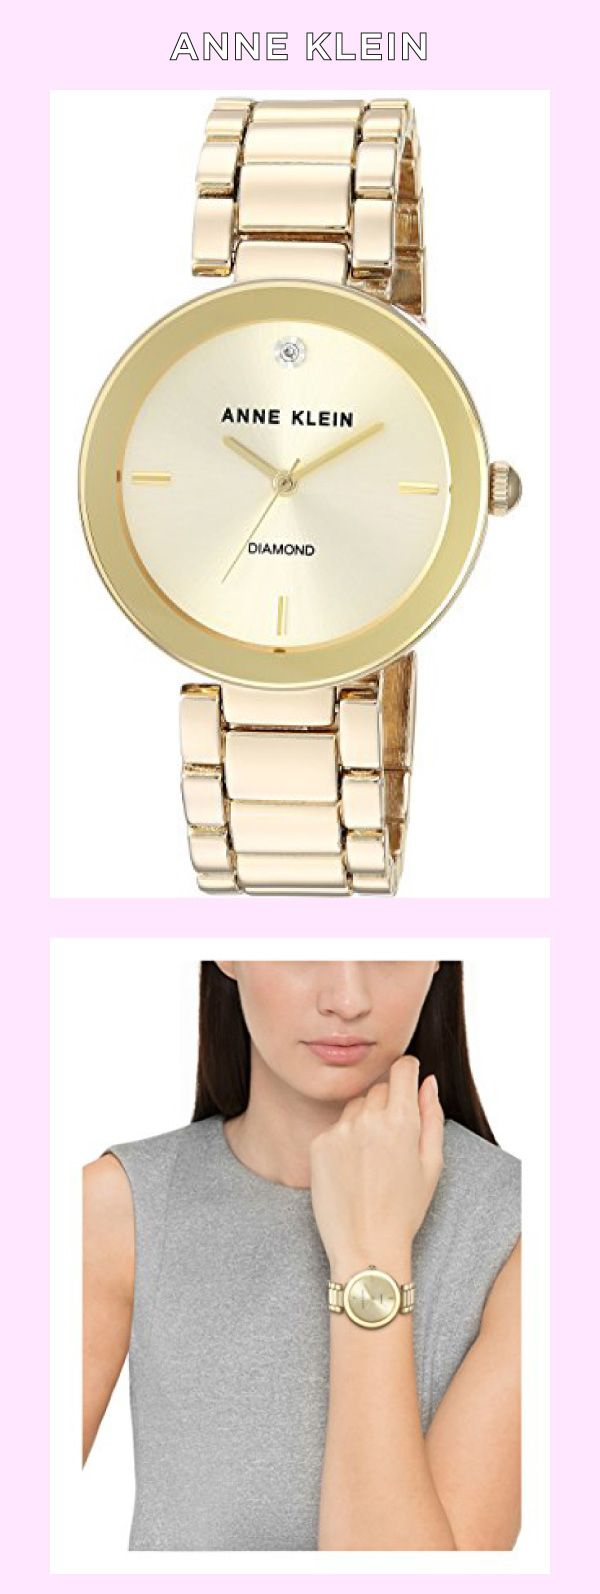 Anne Klein Women's AK/1362CHGB Diamond Dial Gold-Tone Bracelet Watch Made by #Anne Klein Color #Gold. Gold-tone watch with minimalist sunray dial featuring printed logo and diamond marker at 12 o'clock. 32 mm metal case with mineral dial window. Japanese quartz movement with analog display. Gold-tone link bracelet with jewelry-clasp closure. Not water resistant